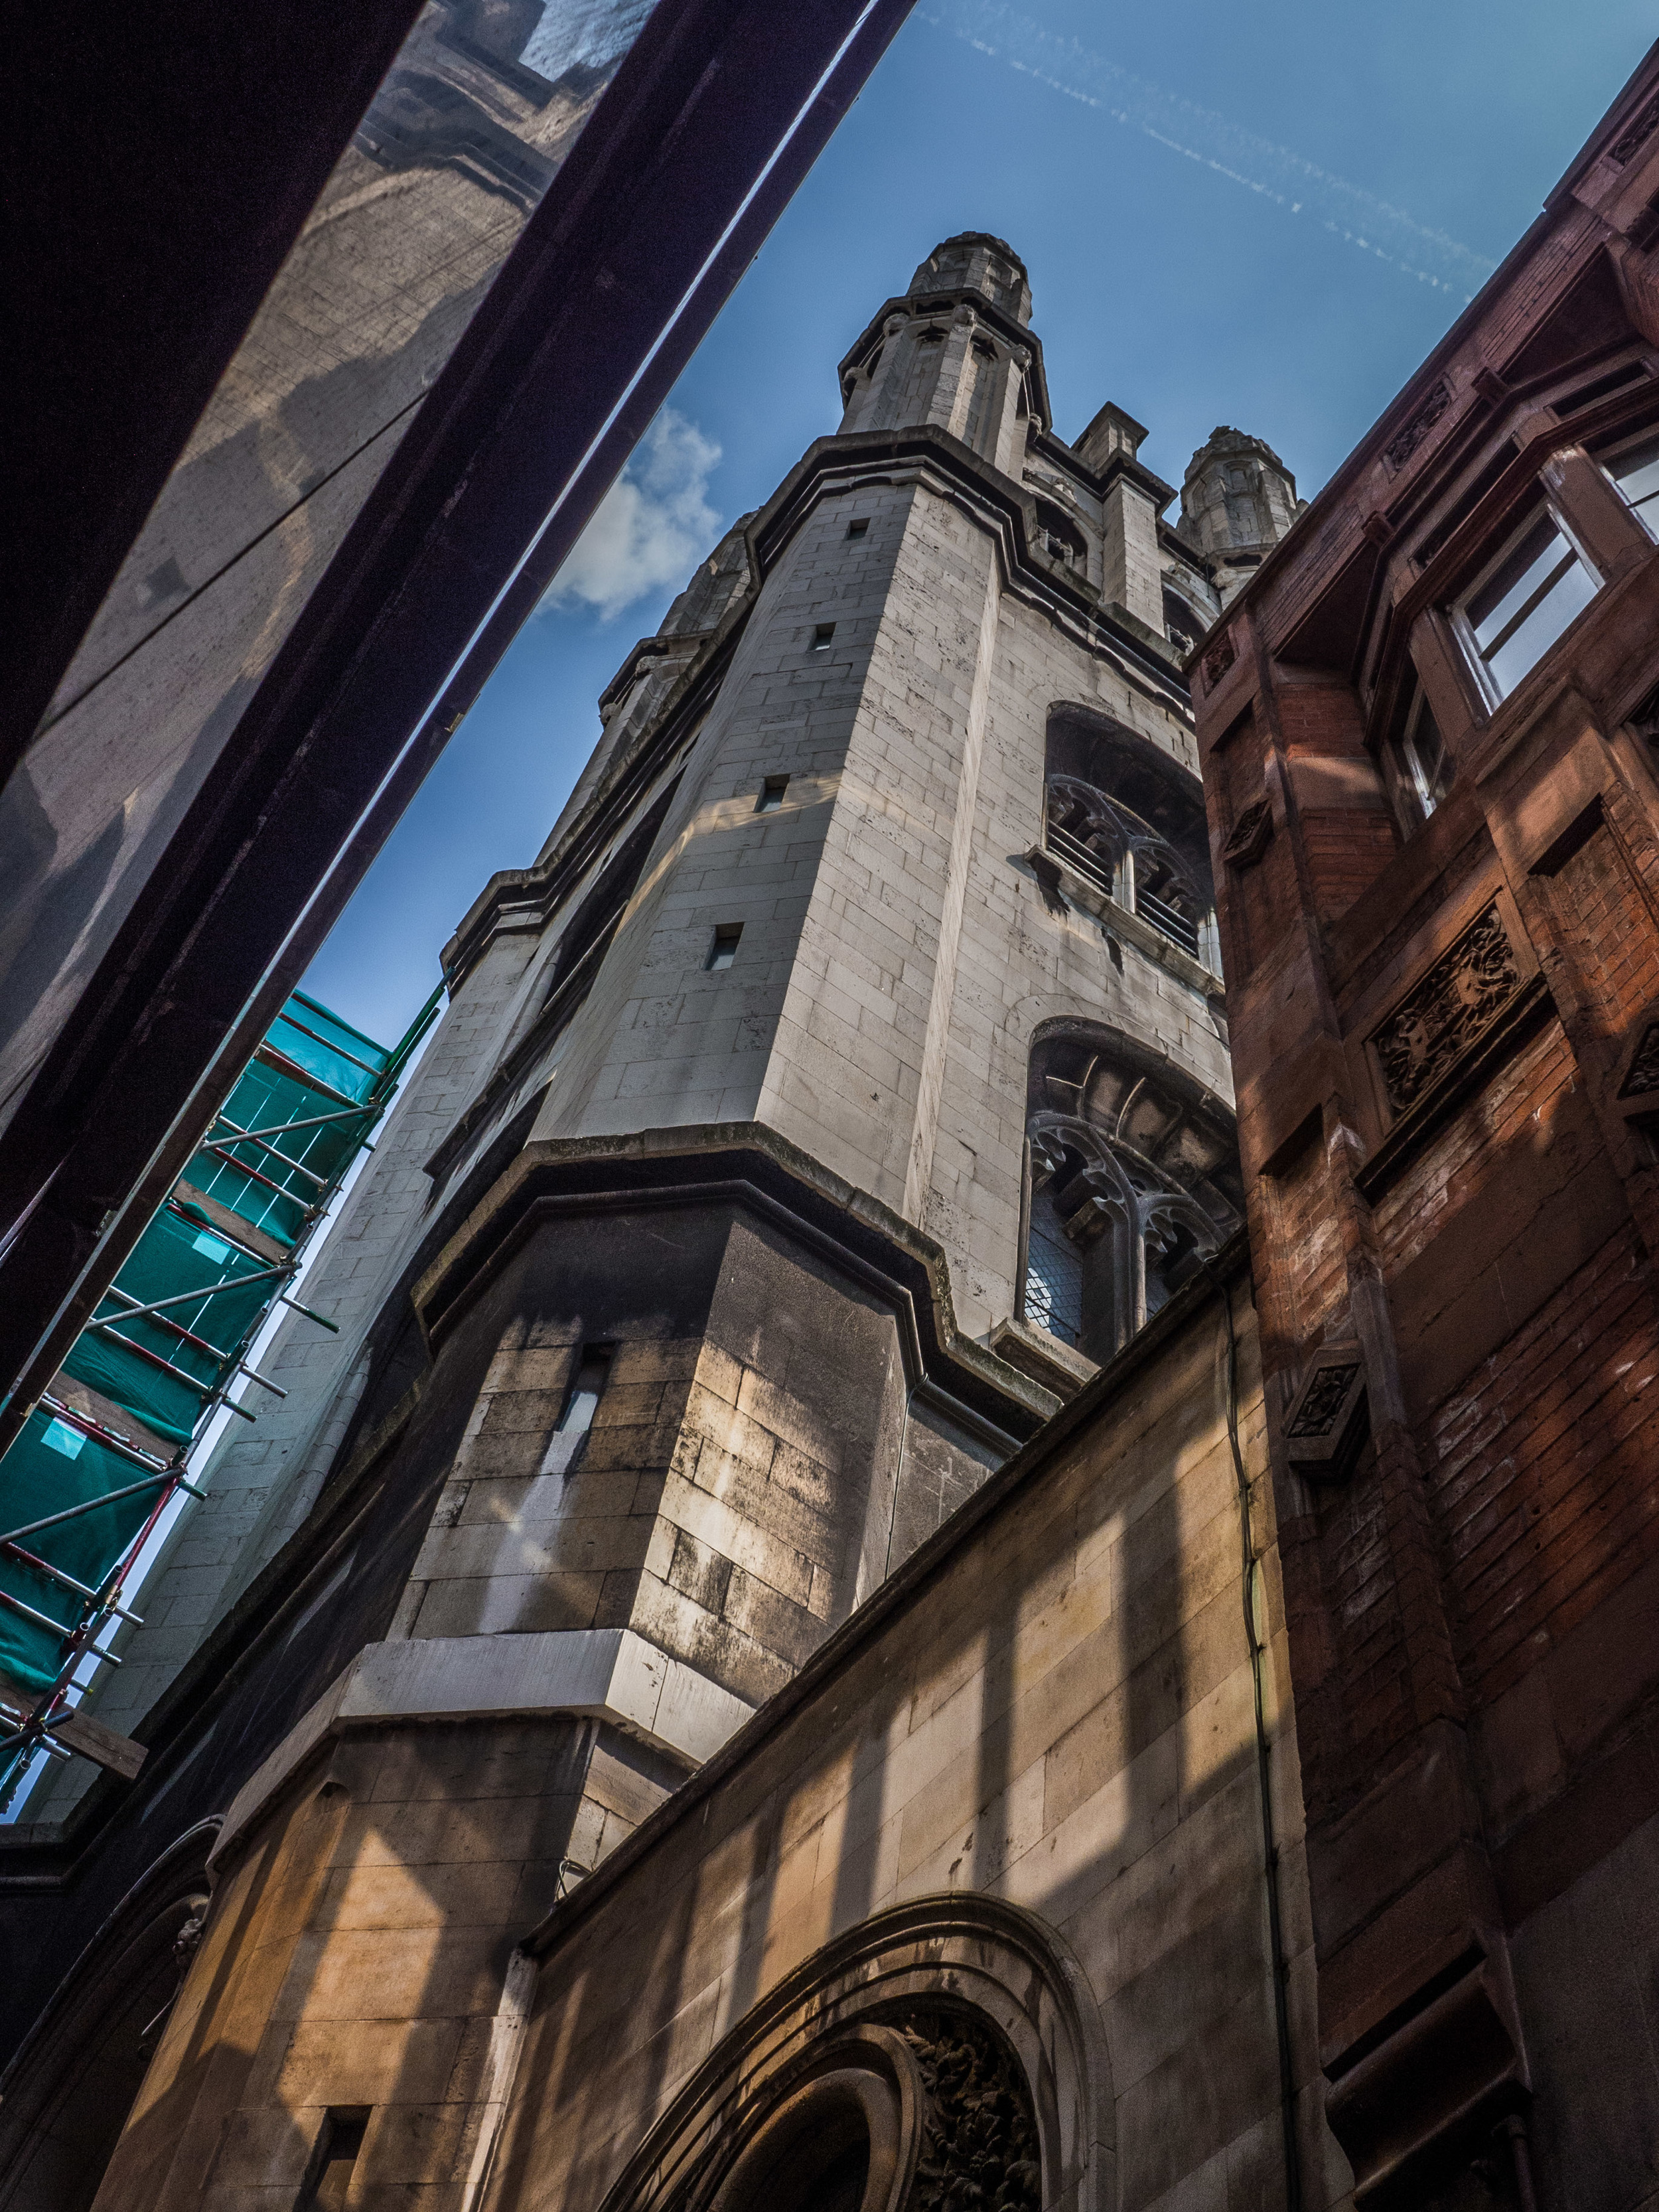 Like so many London Churches, St. Michael's is squeezed in between the surrounding buildings.